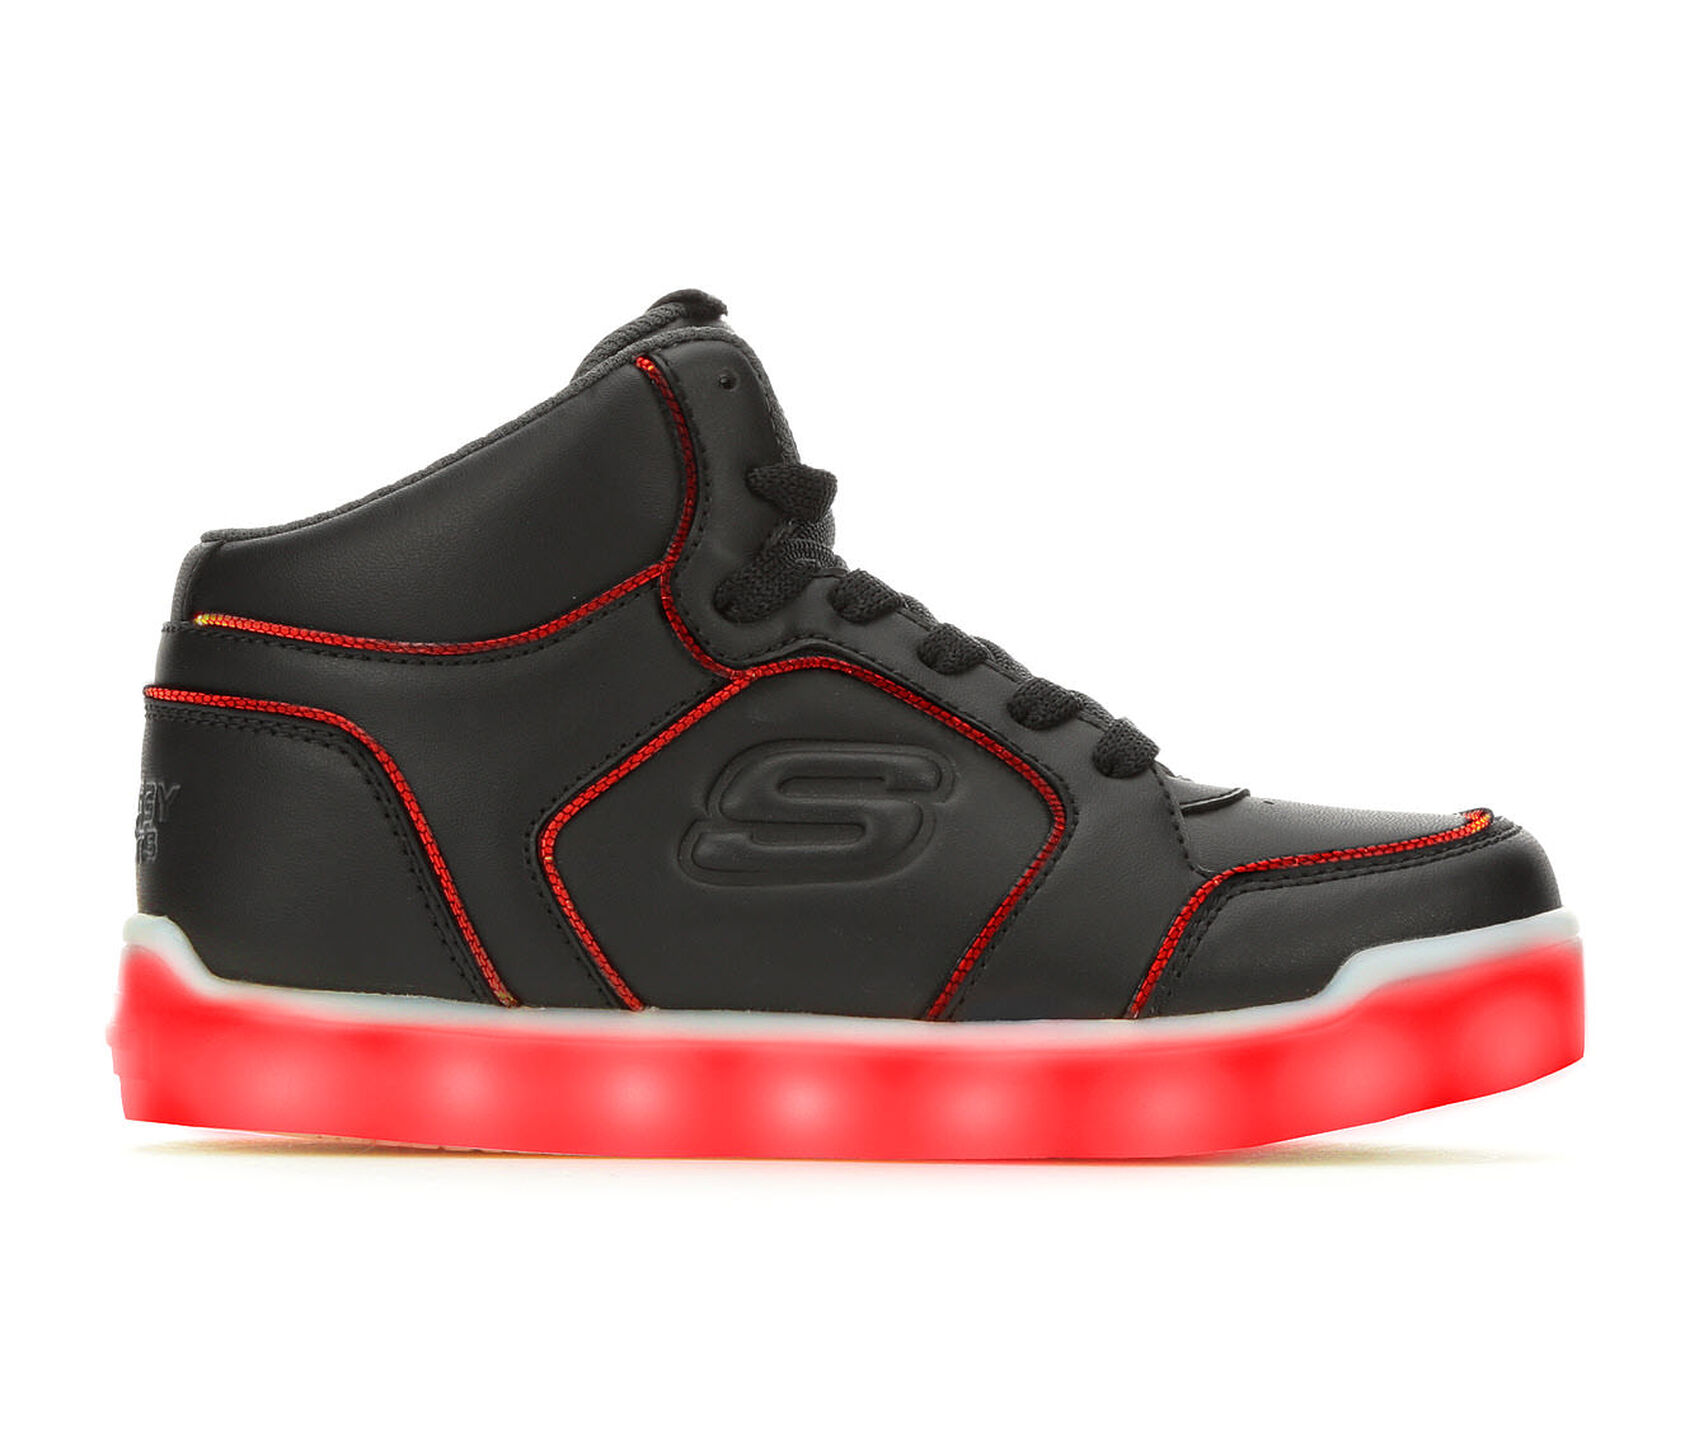 on sale info for various colors skechers led shoes57% OFF 21 k Mizuno